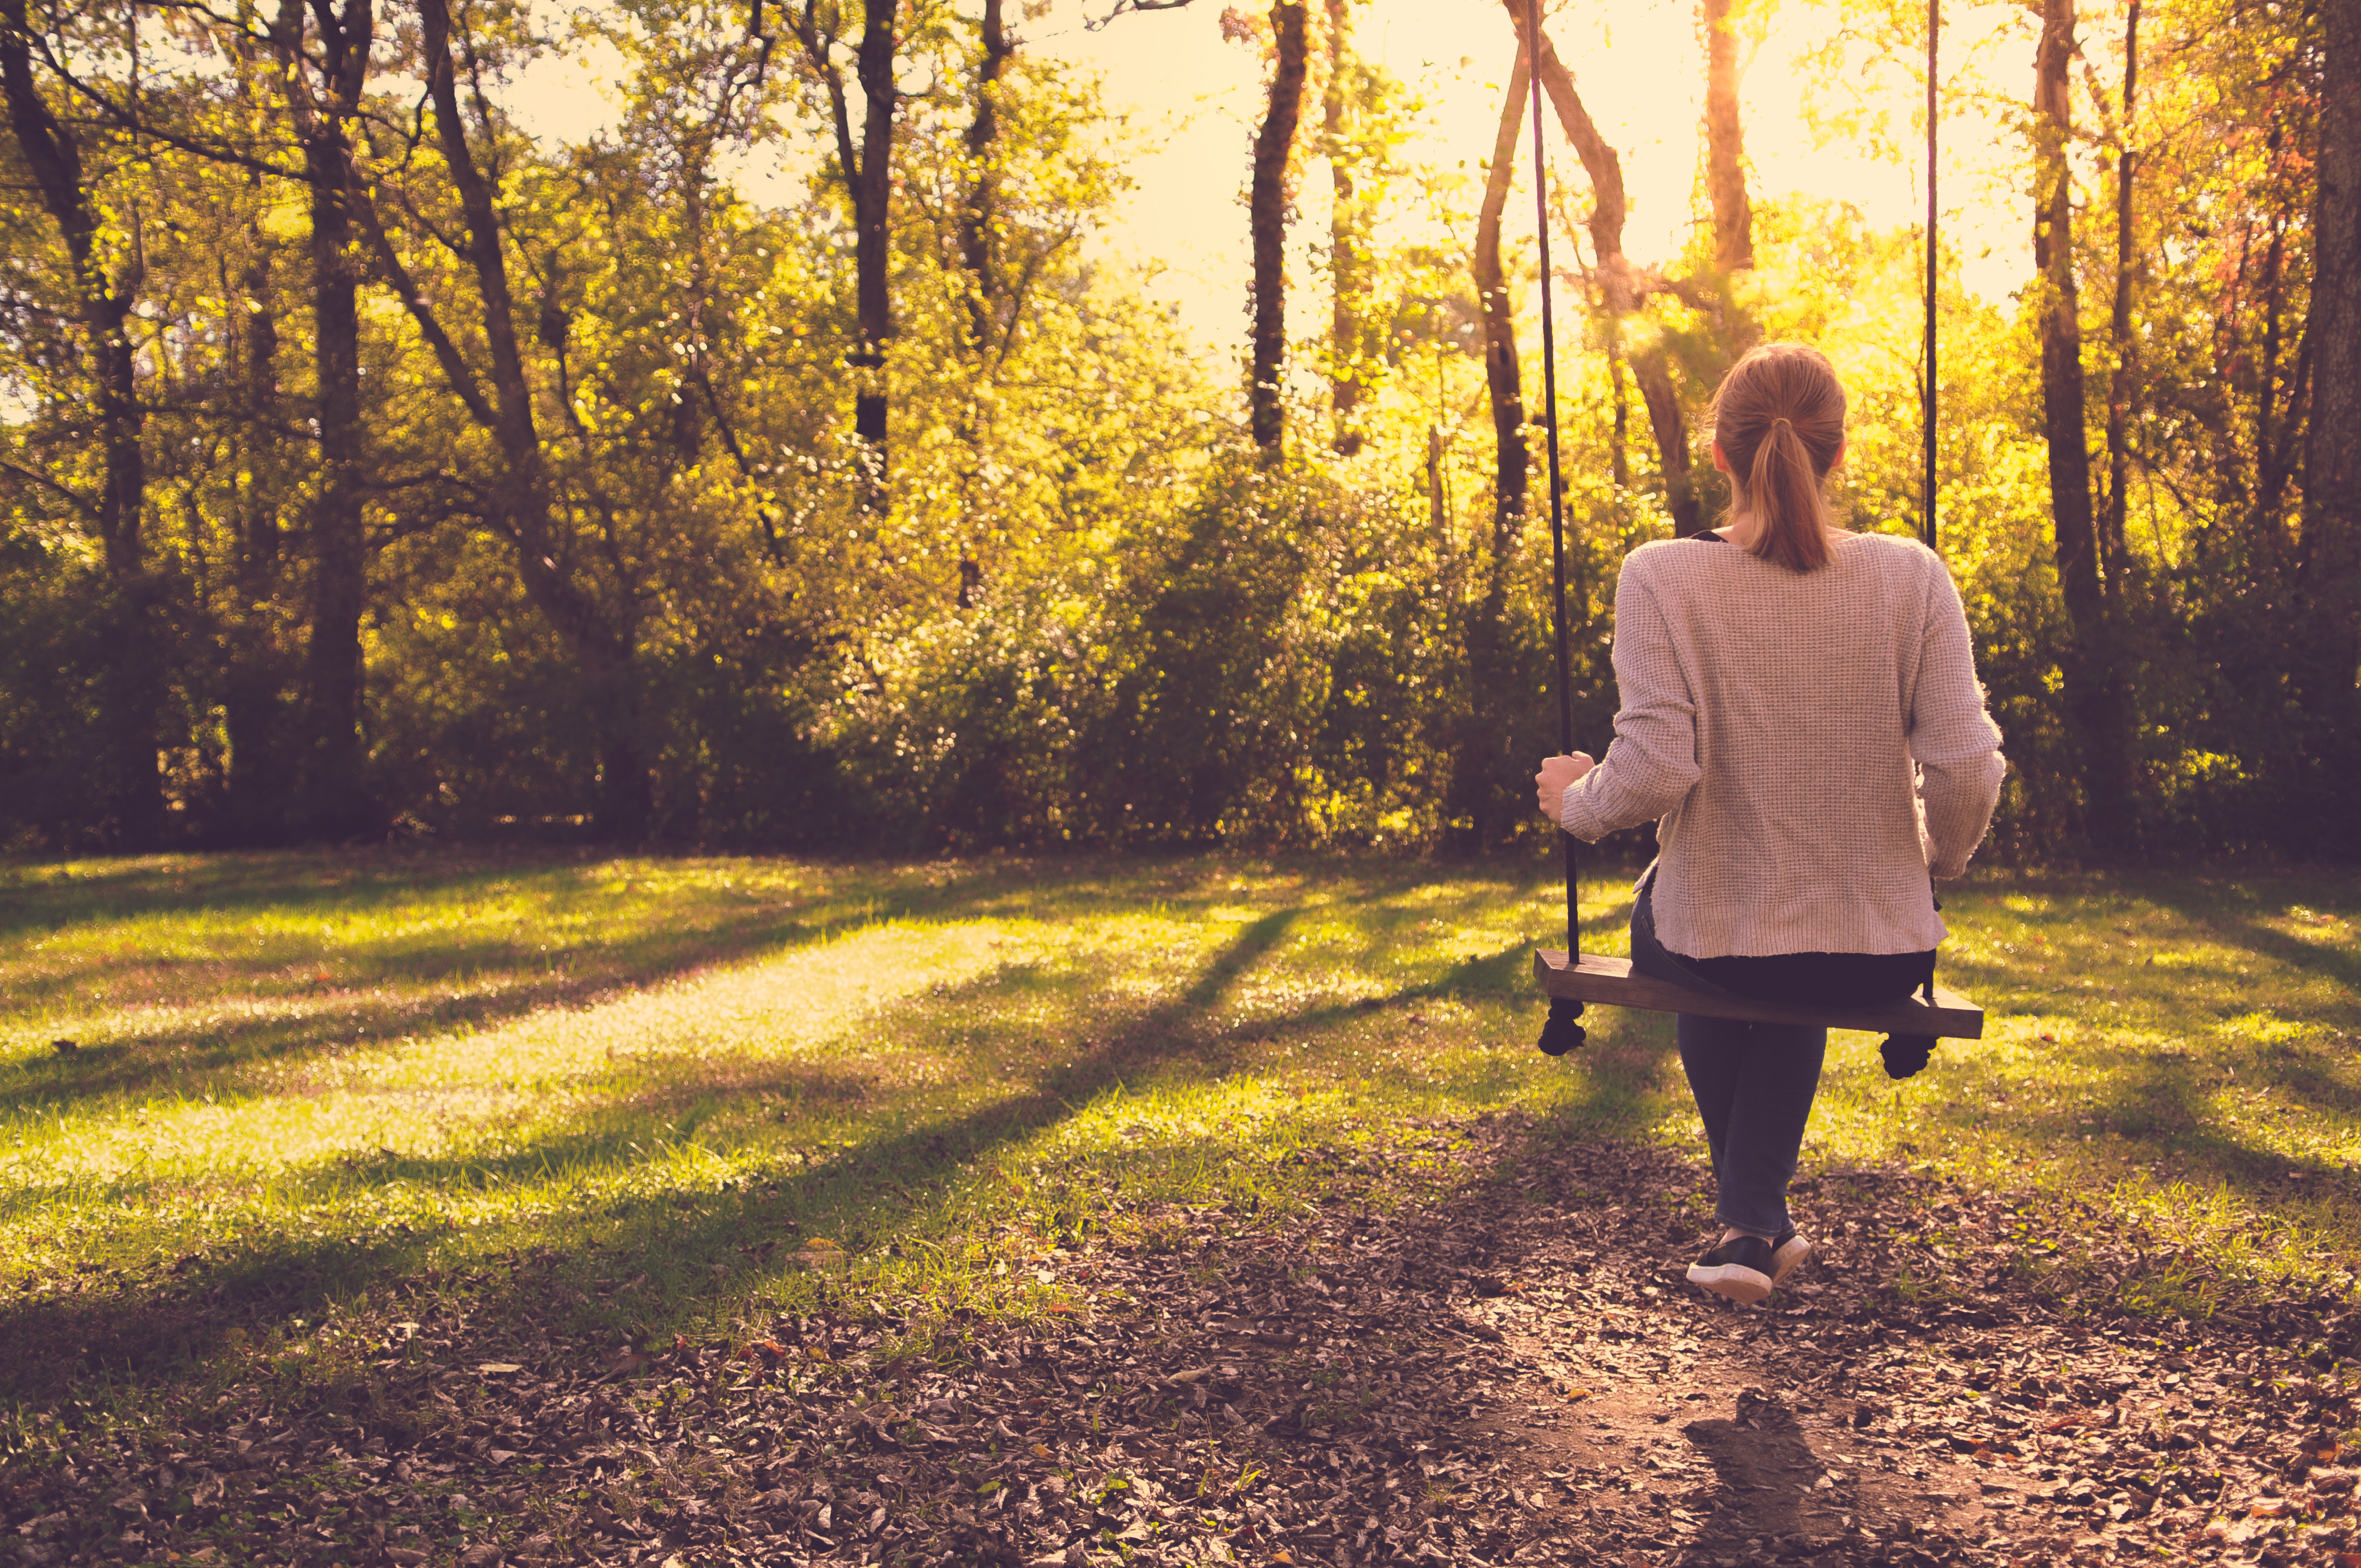 Girl Sitting Alone On Swing In Autumn